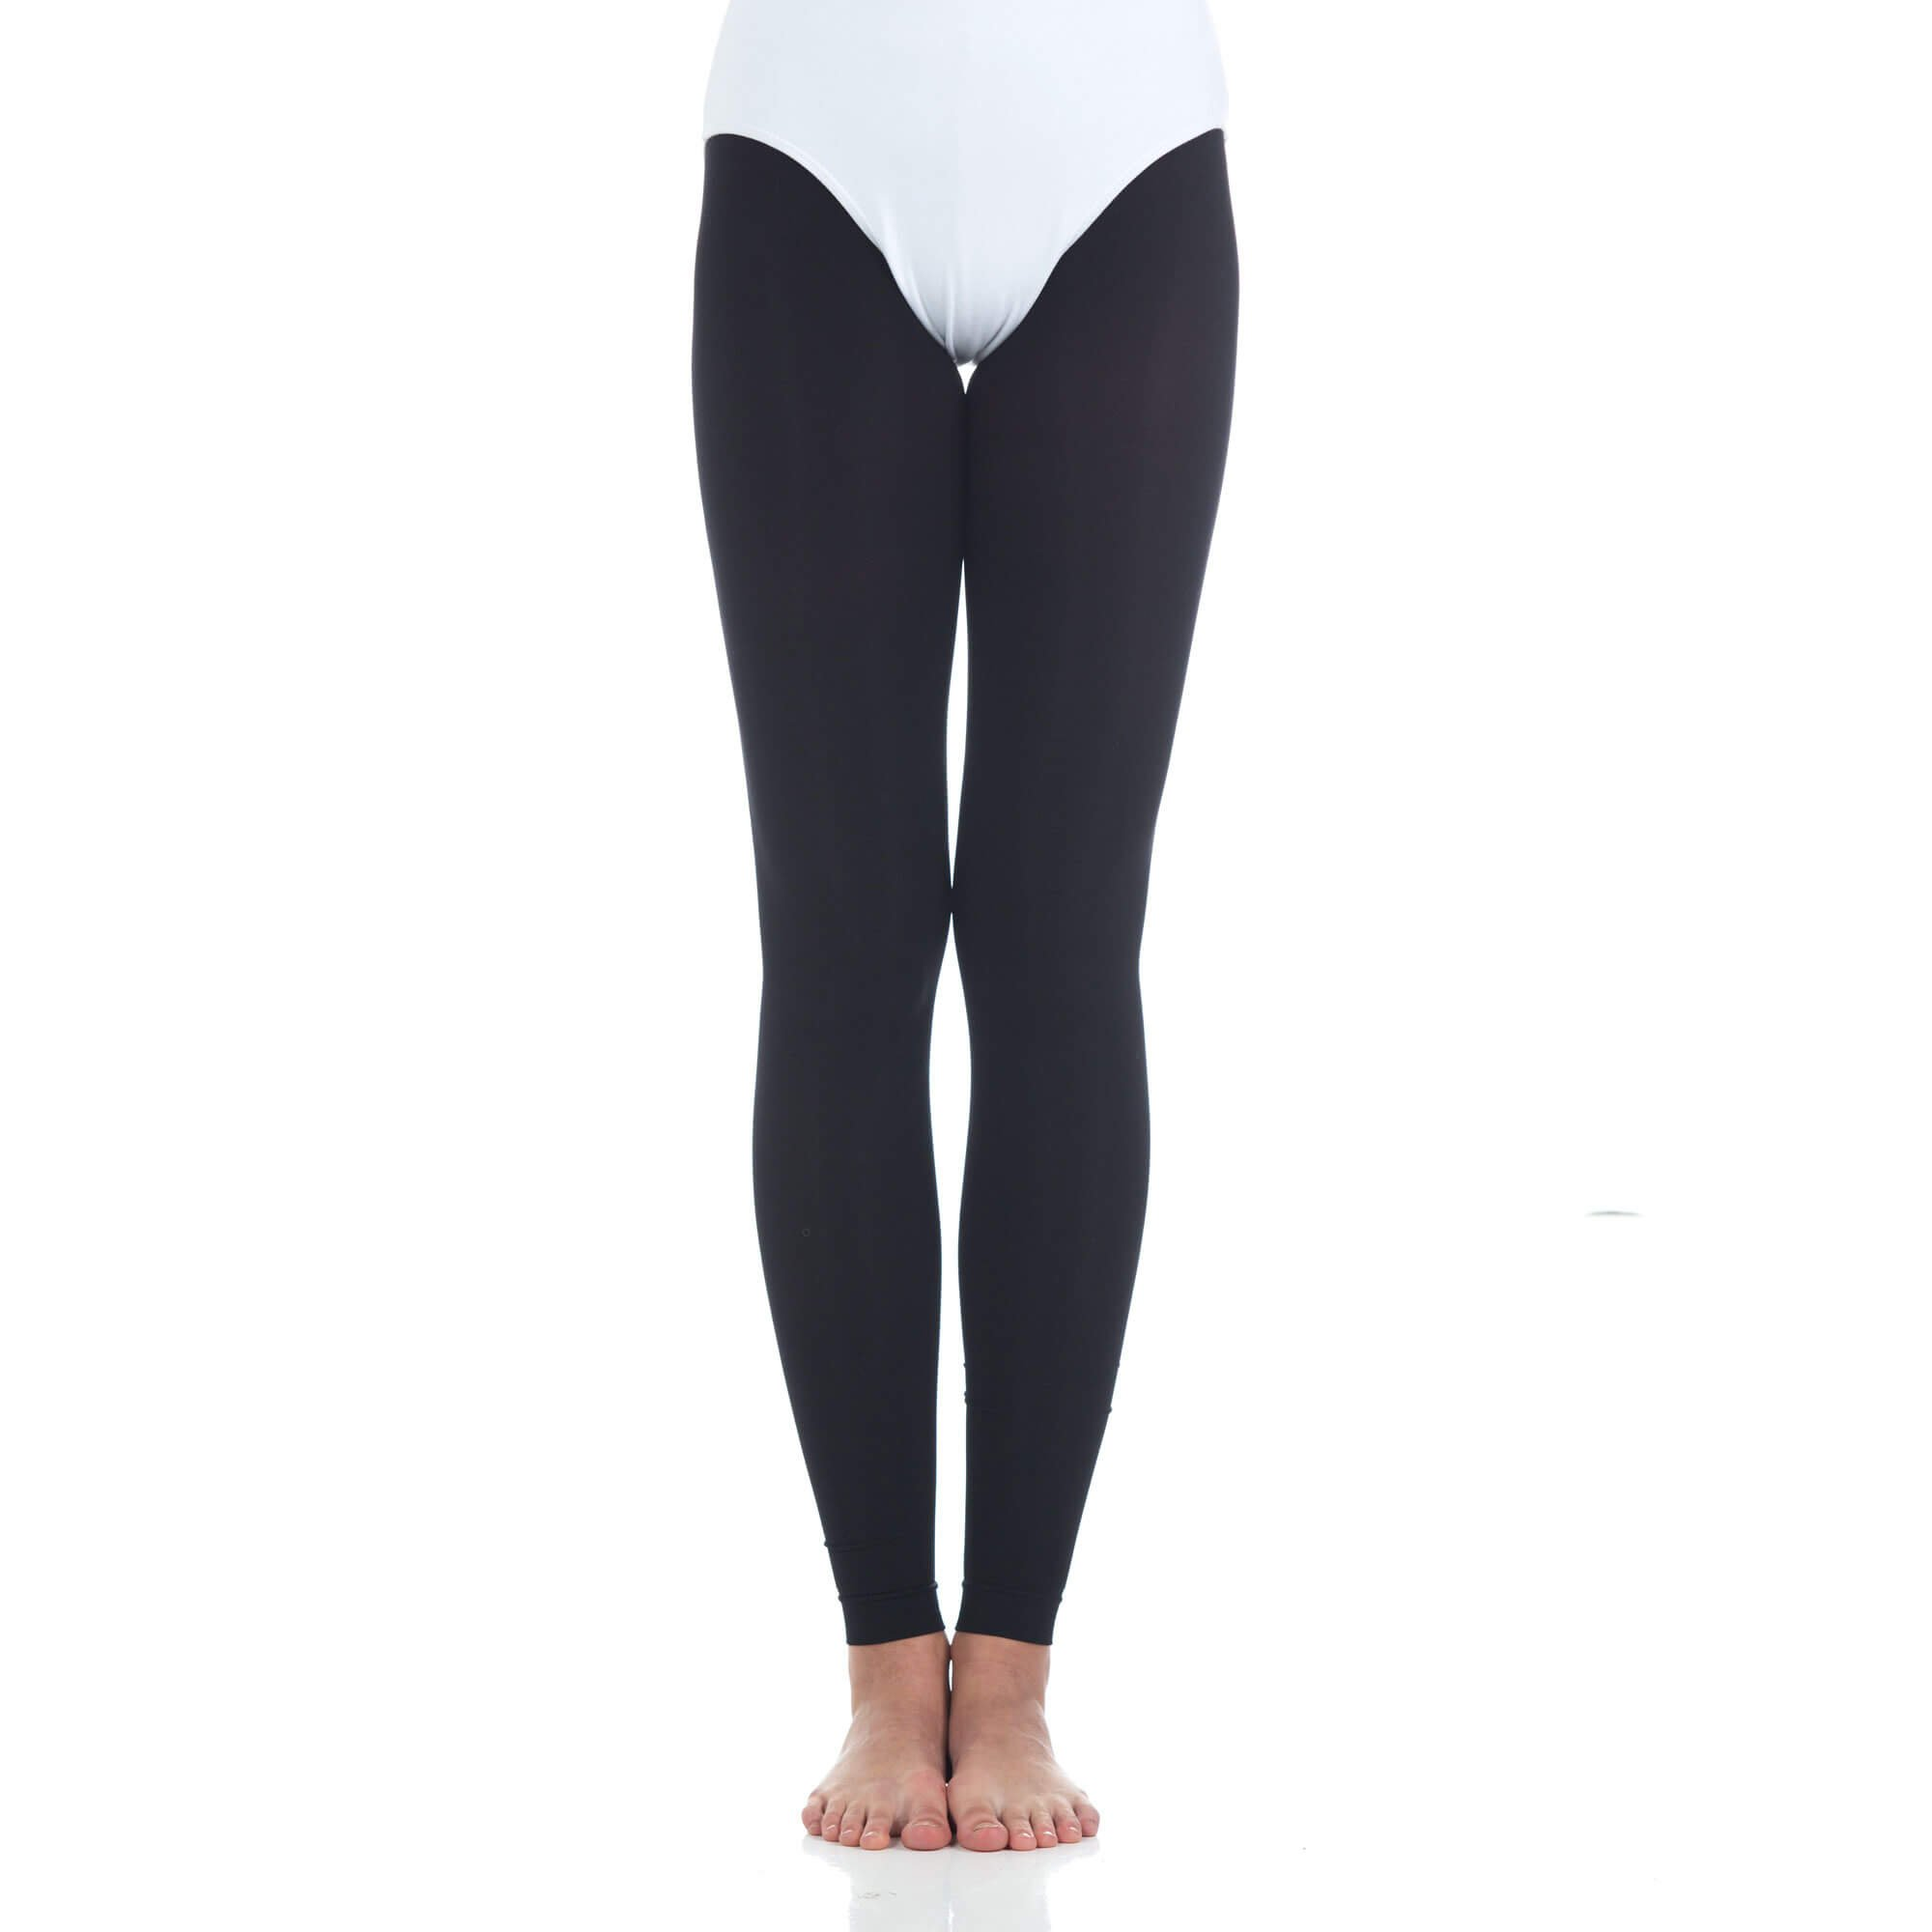 Baiwu Women's Footless Soft Dance Tight